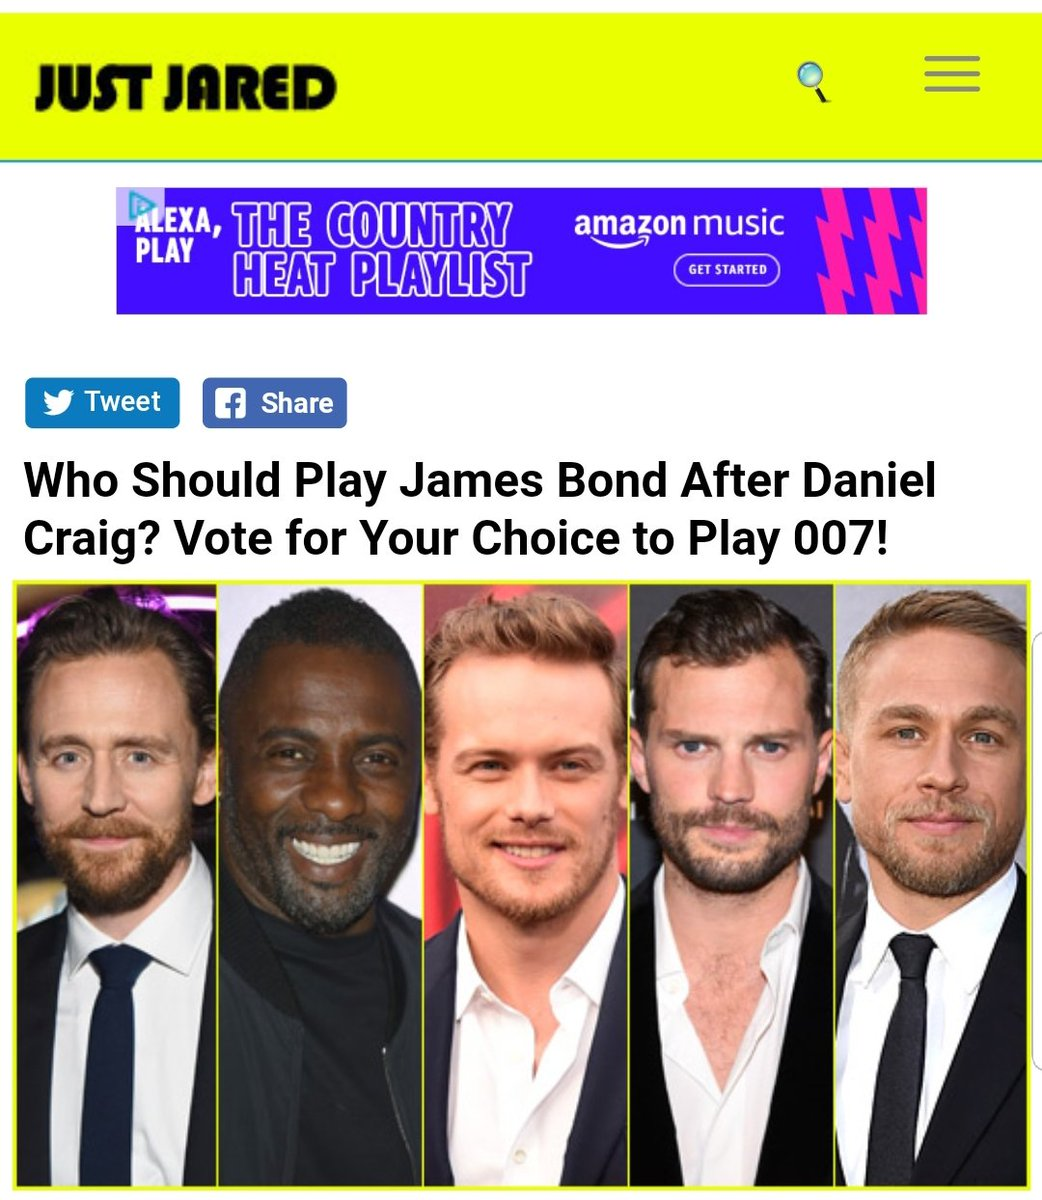 Update: @SamHeughan  won the fan poll #SamHeughan007  With 261,530 votes  Who Should Play James Bond After Daniel Craig? Vote for Your Choice to Play 007!  http://www. justjared.com/2018/08/13/who -should-play-james-bond-after-daniel-craig-vote-for-your-choice-to-play-007/ &nbsp; …  via @JustJared<br>http://pic.twitter.com/sGzI8rvxwY